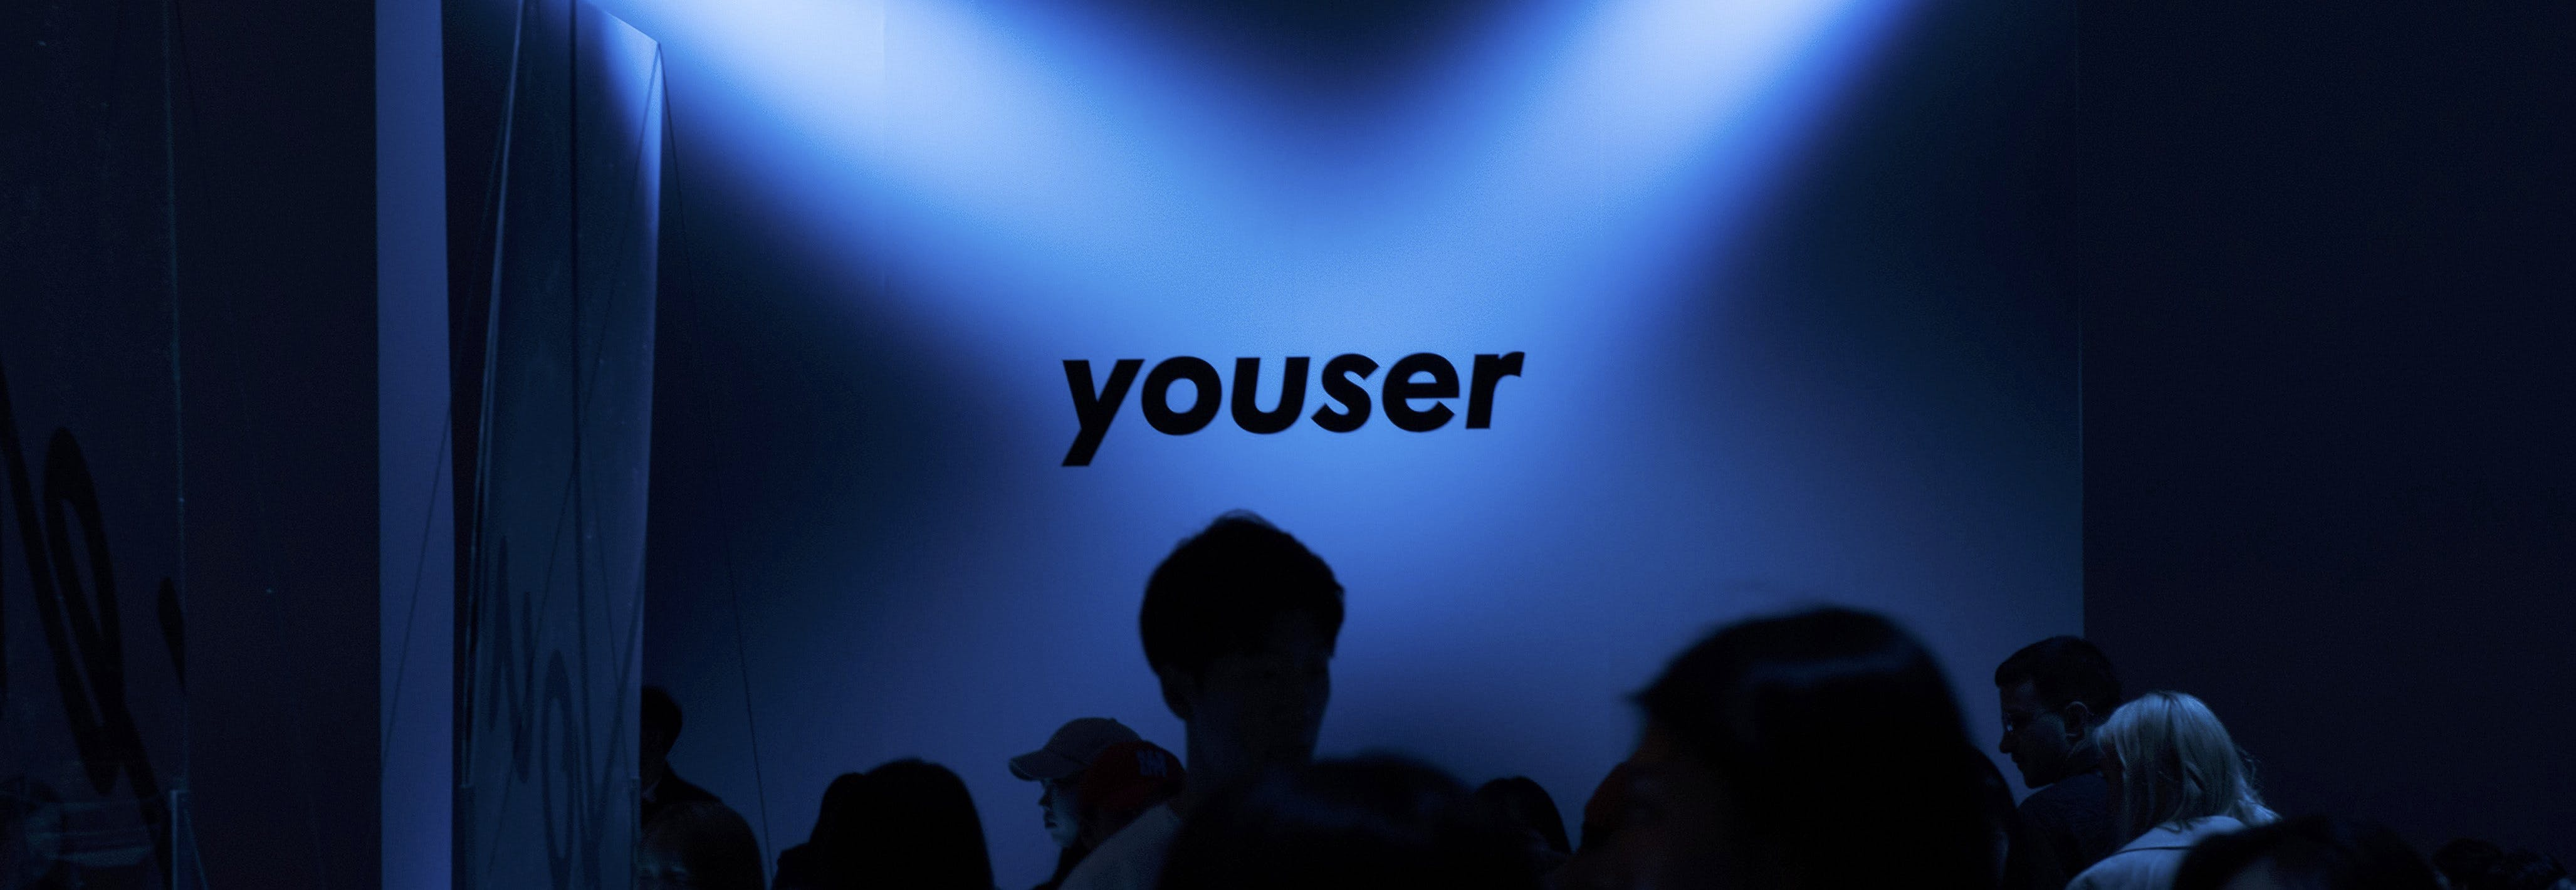 youser-fw18-article-header